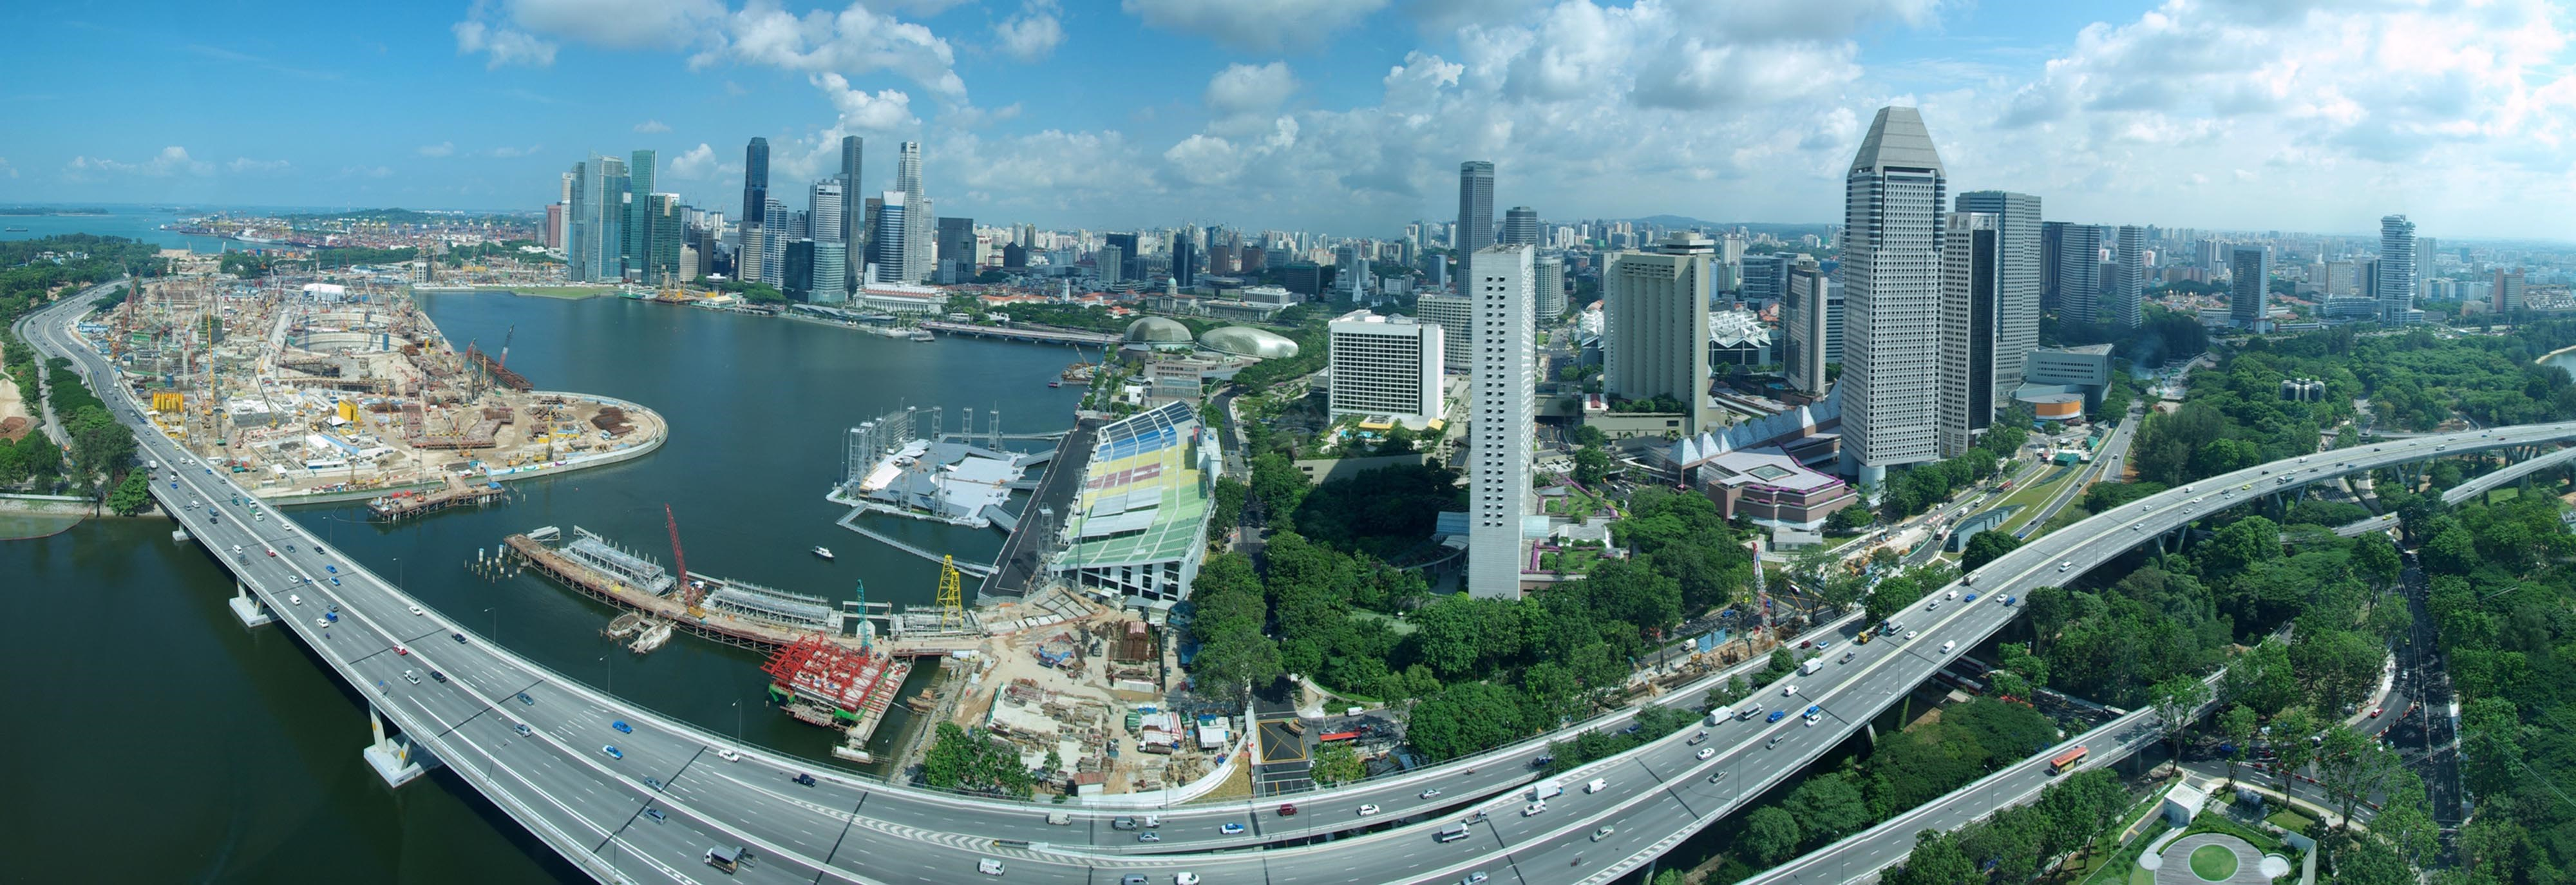 Singapore. Photo: Matthew Weinelm/Dreamstime